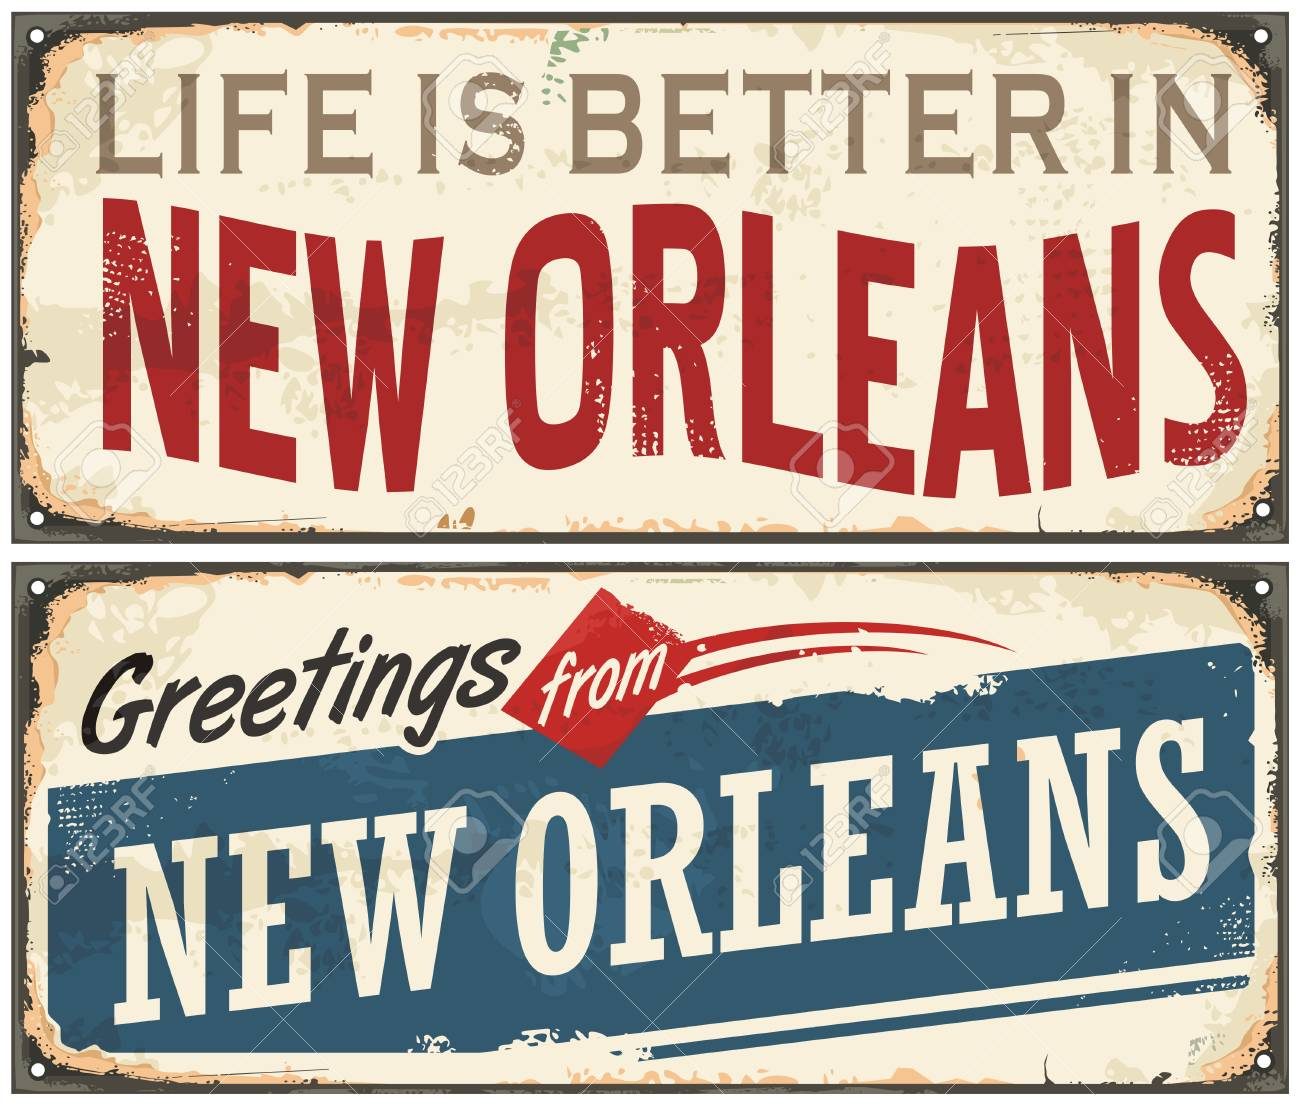 New Orleans Florida Retro Tin Sign Design On Old Rusty Background